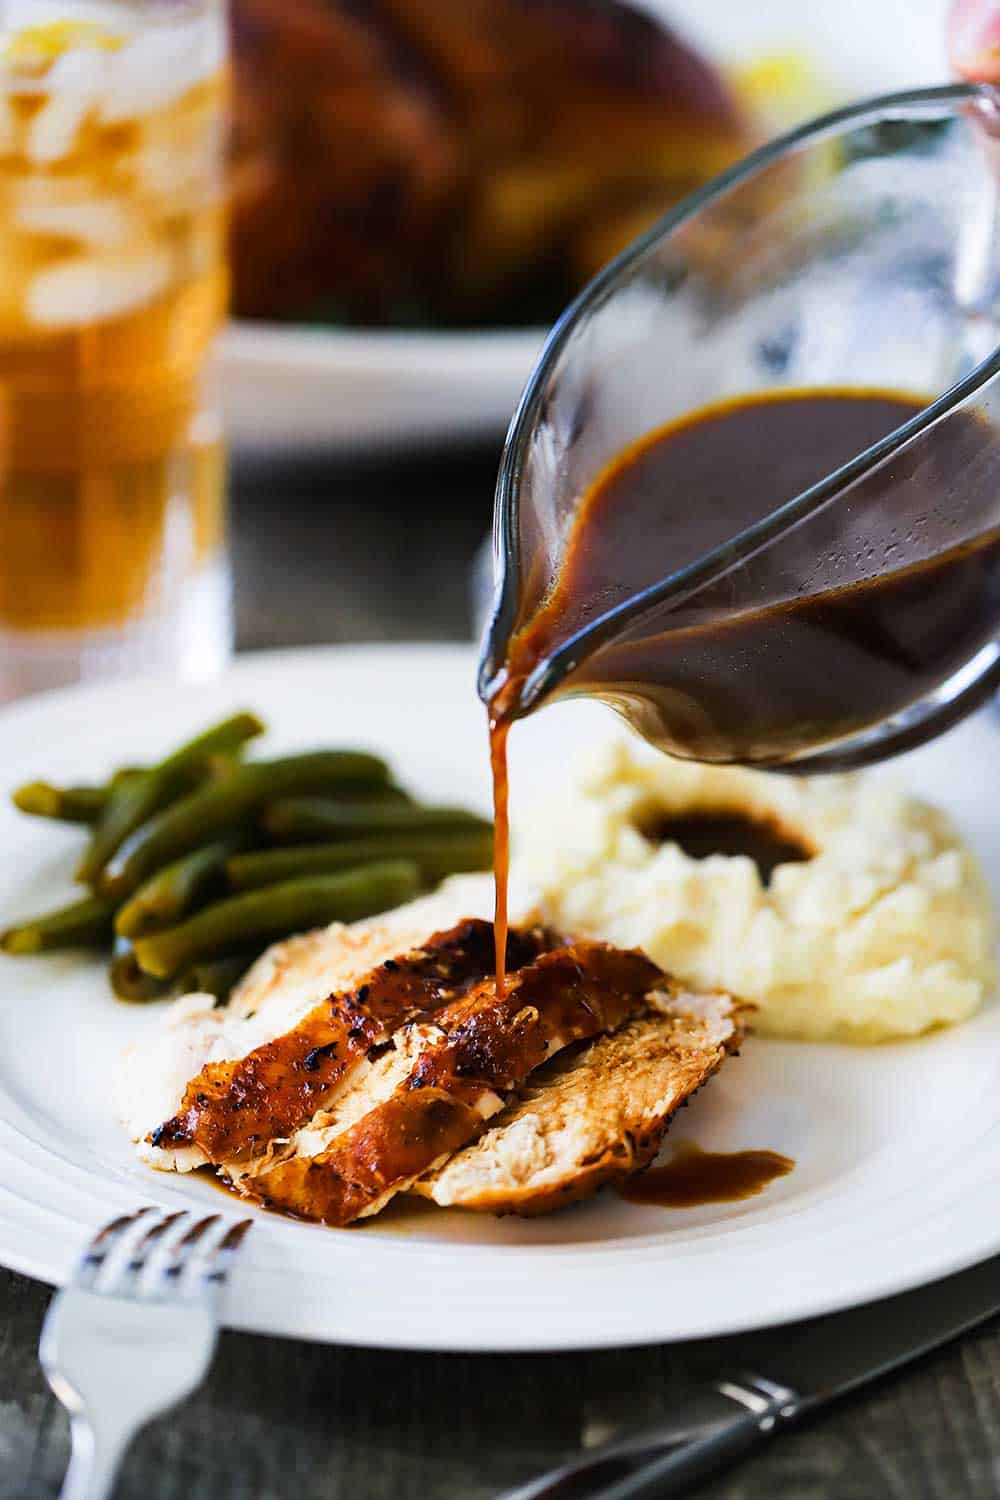 Brown gravy being poured from a glass gravy boat over sliced roasted chicken next to mashed potatoes and green beans.